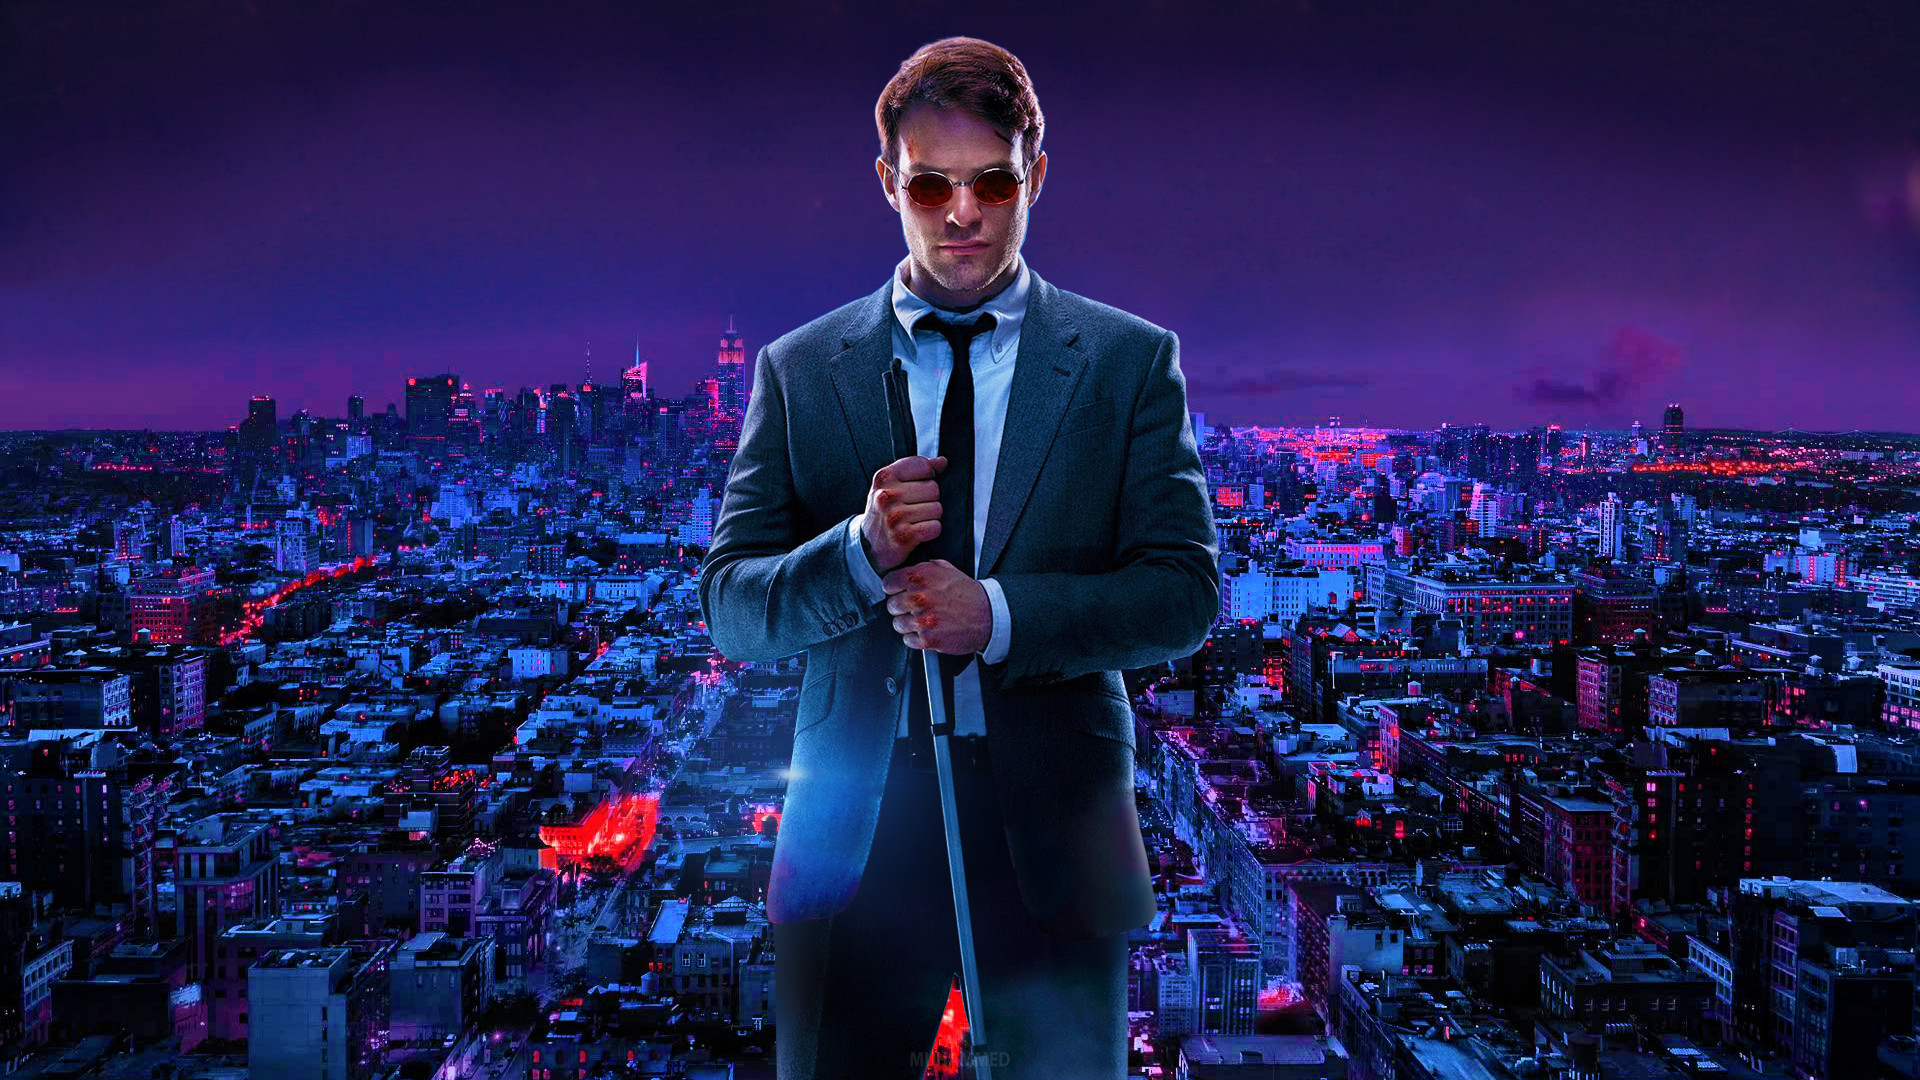 Daredevil HD Wallpaper Without Text by muhammedaktunc Daredevil HD Wallpaper  Without Text by muhammedaktunc